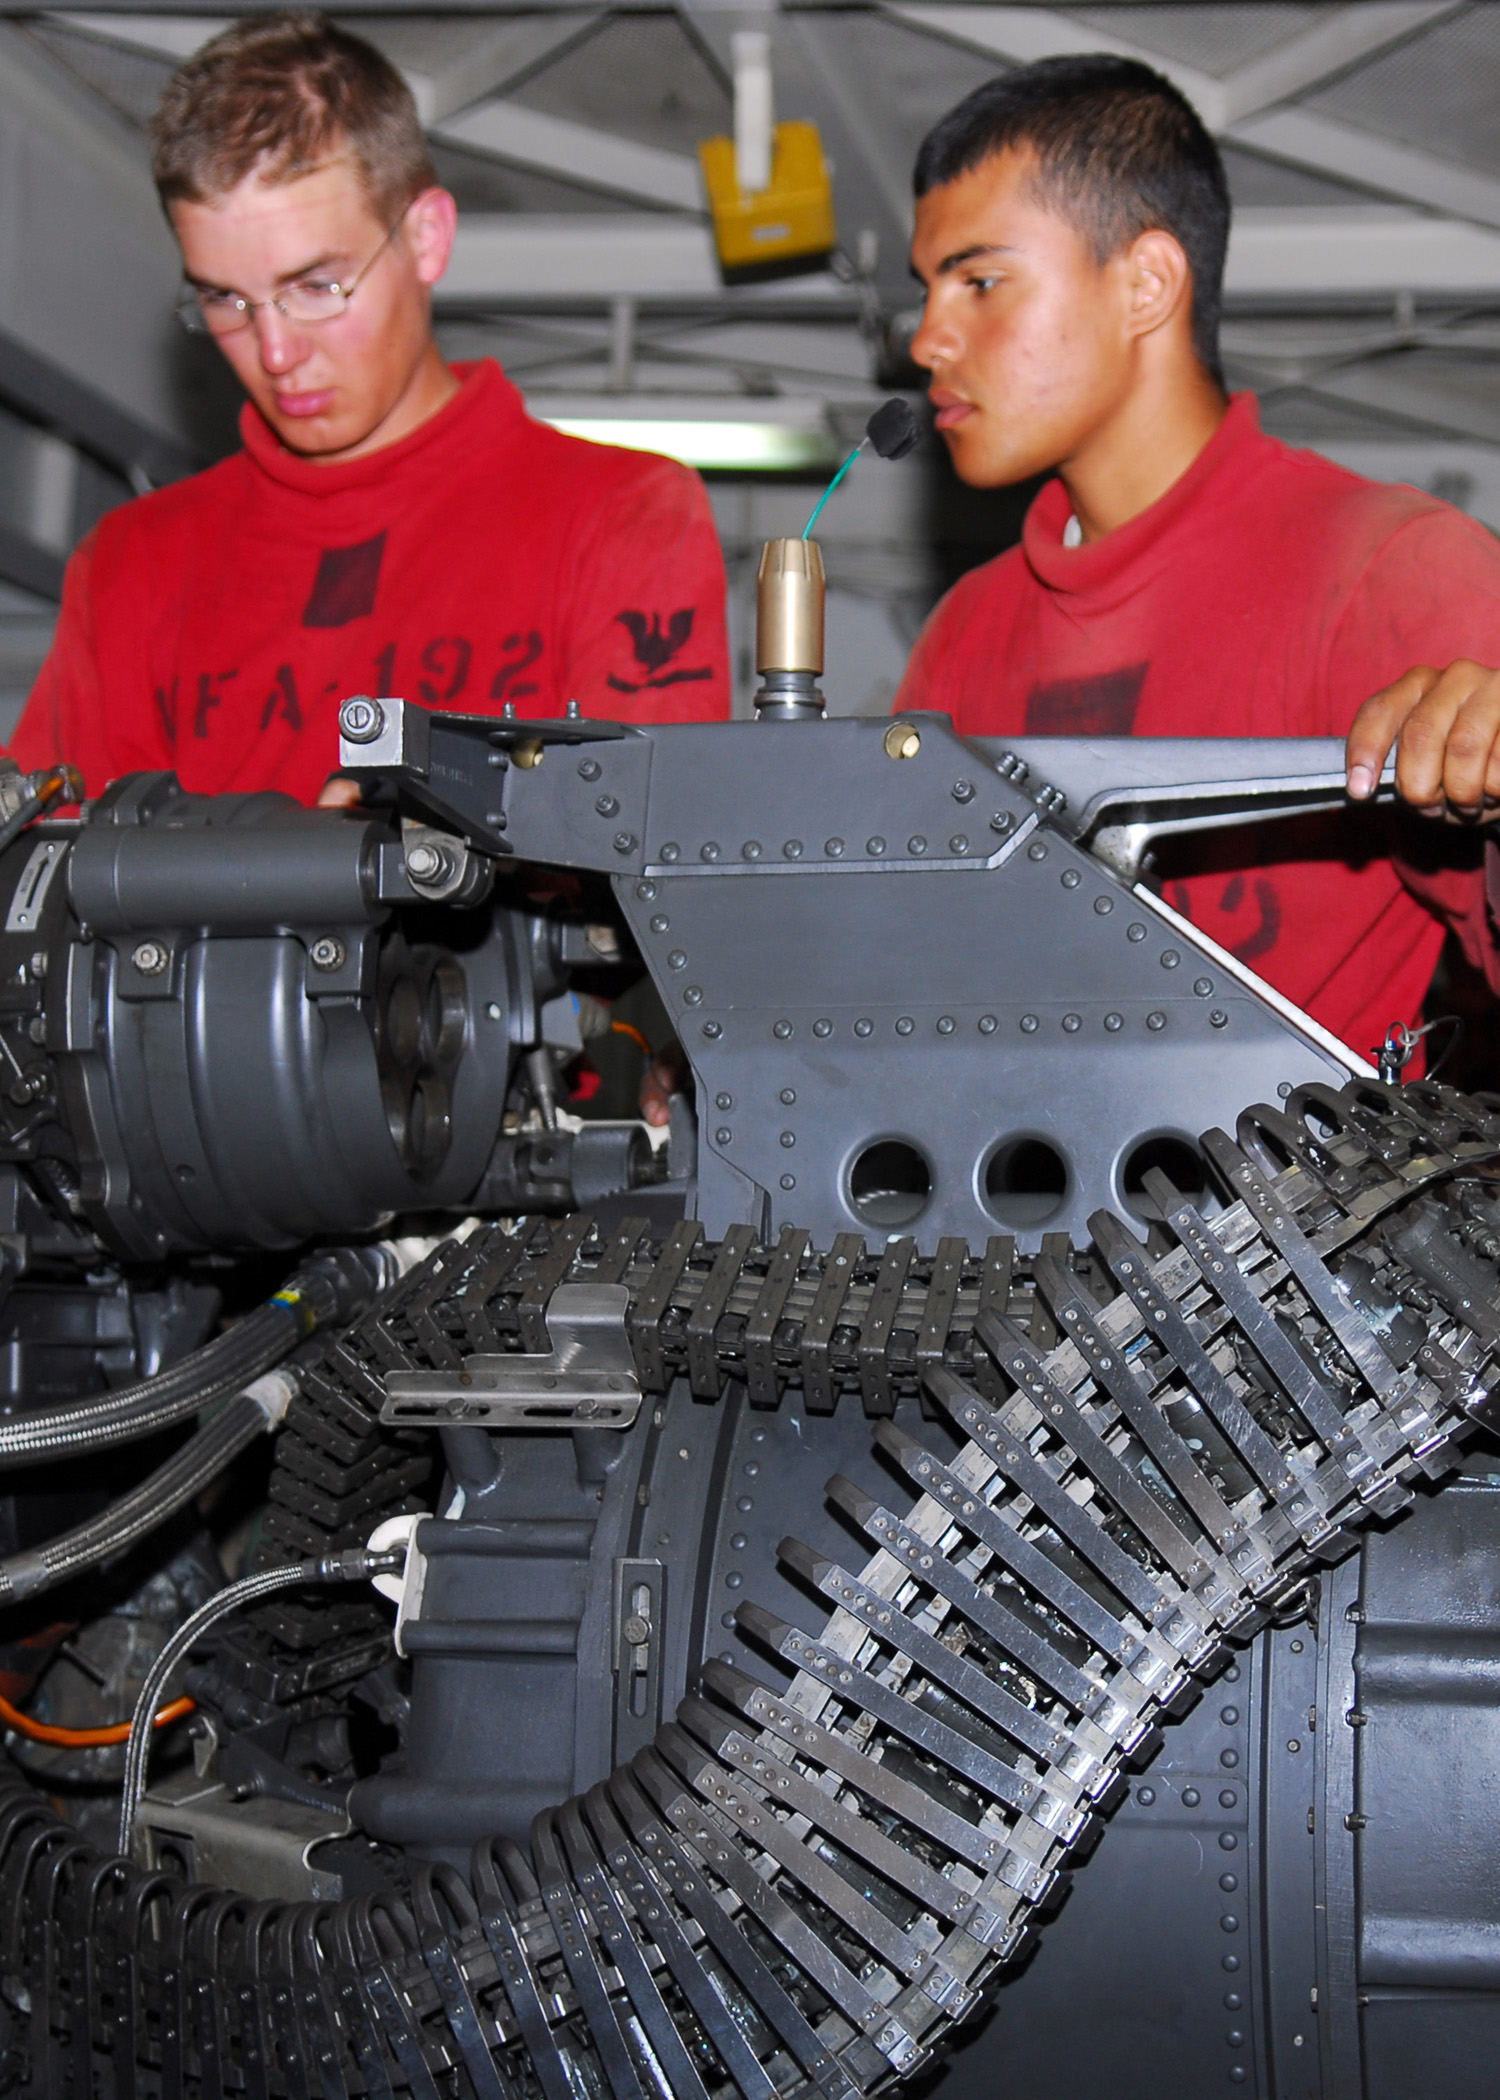 auto mechanic research paper Research paper automotive mechanic auto mechanic – research paper auto mechanic pic 1 today i will be looking more into the career of an auto mechanic.